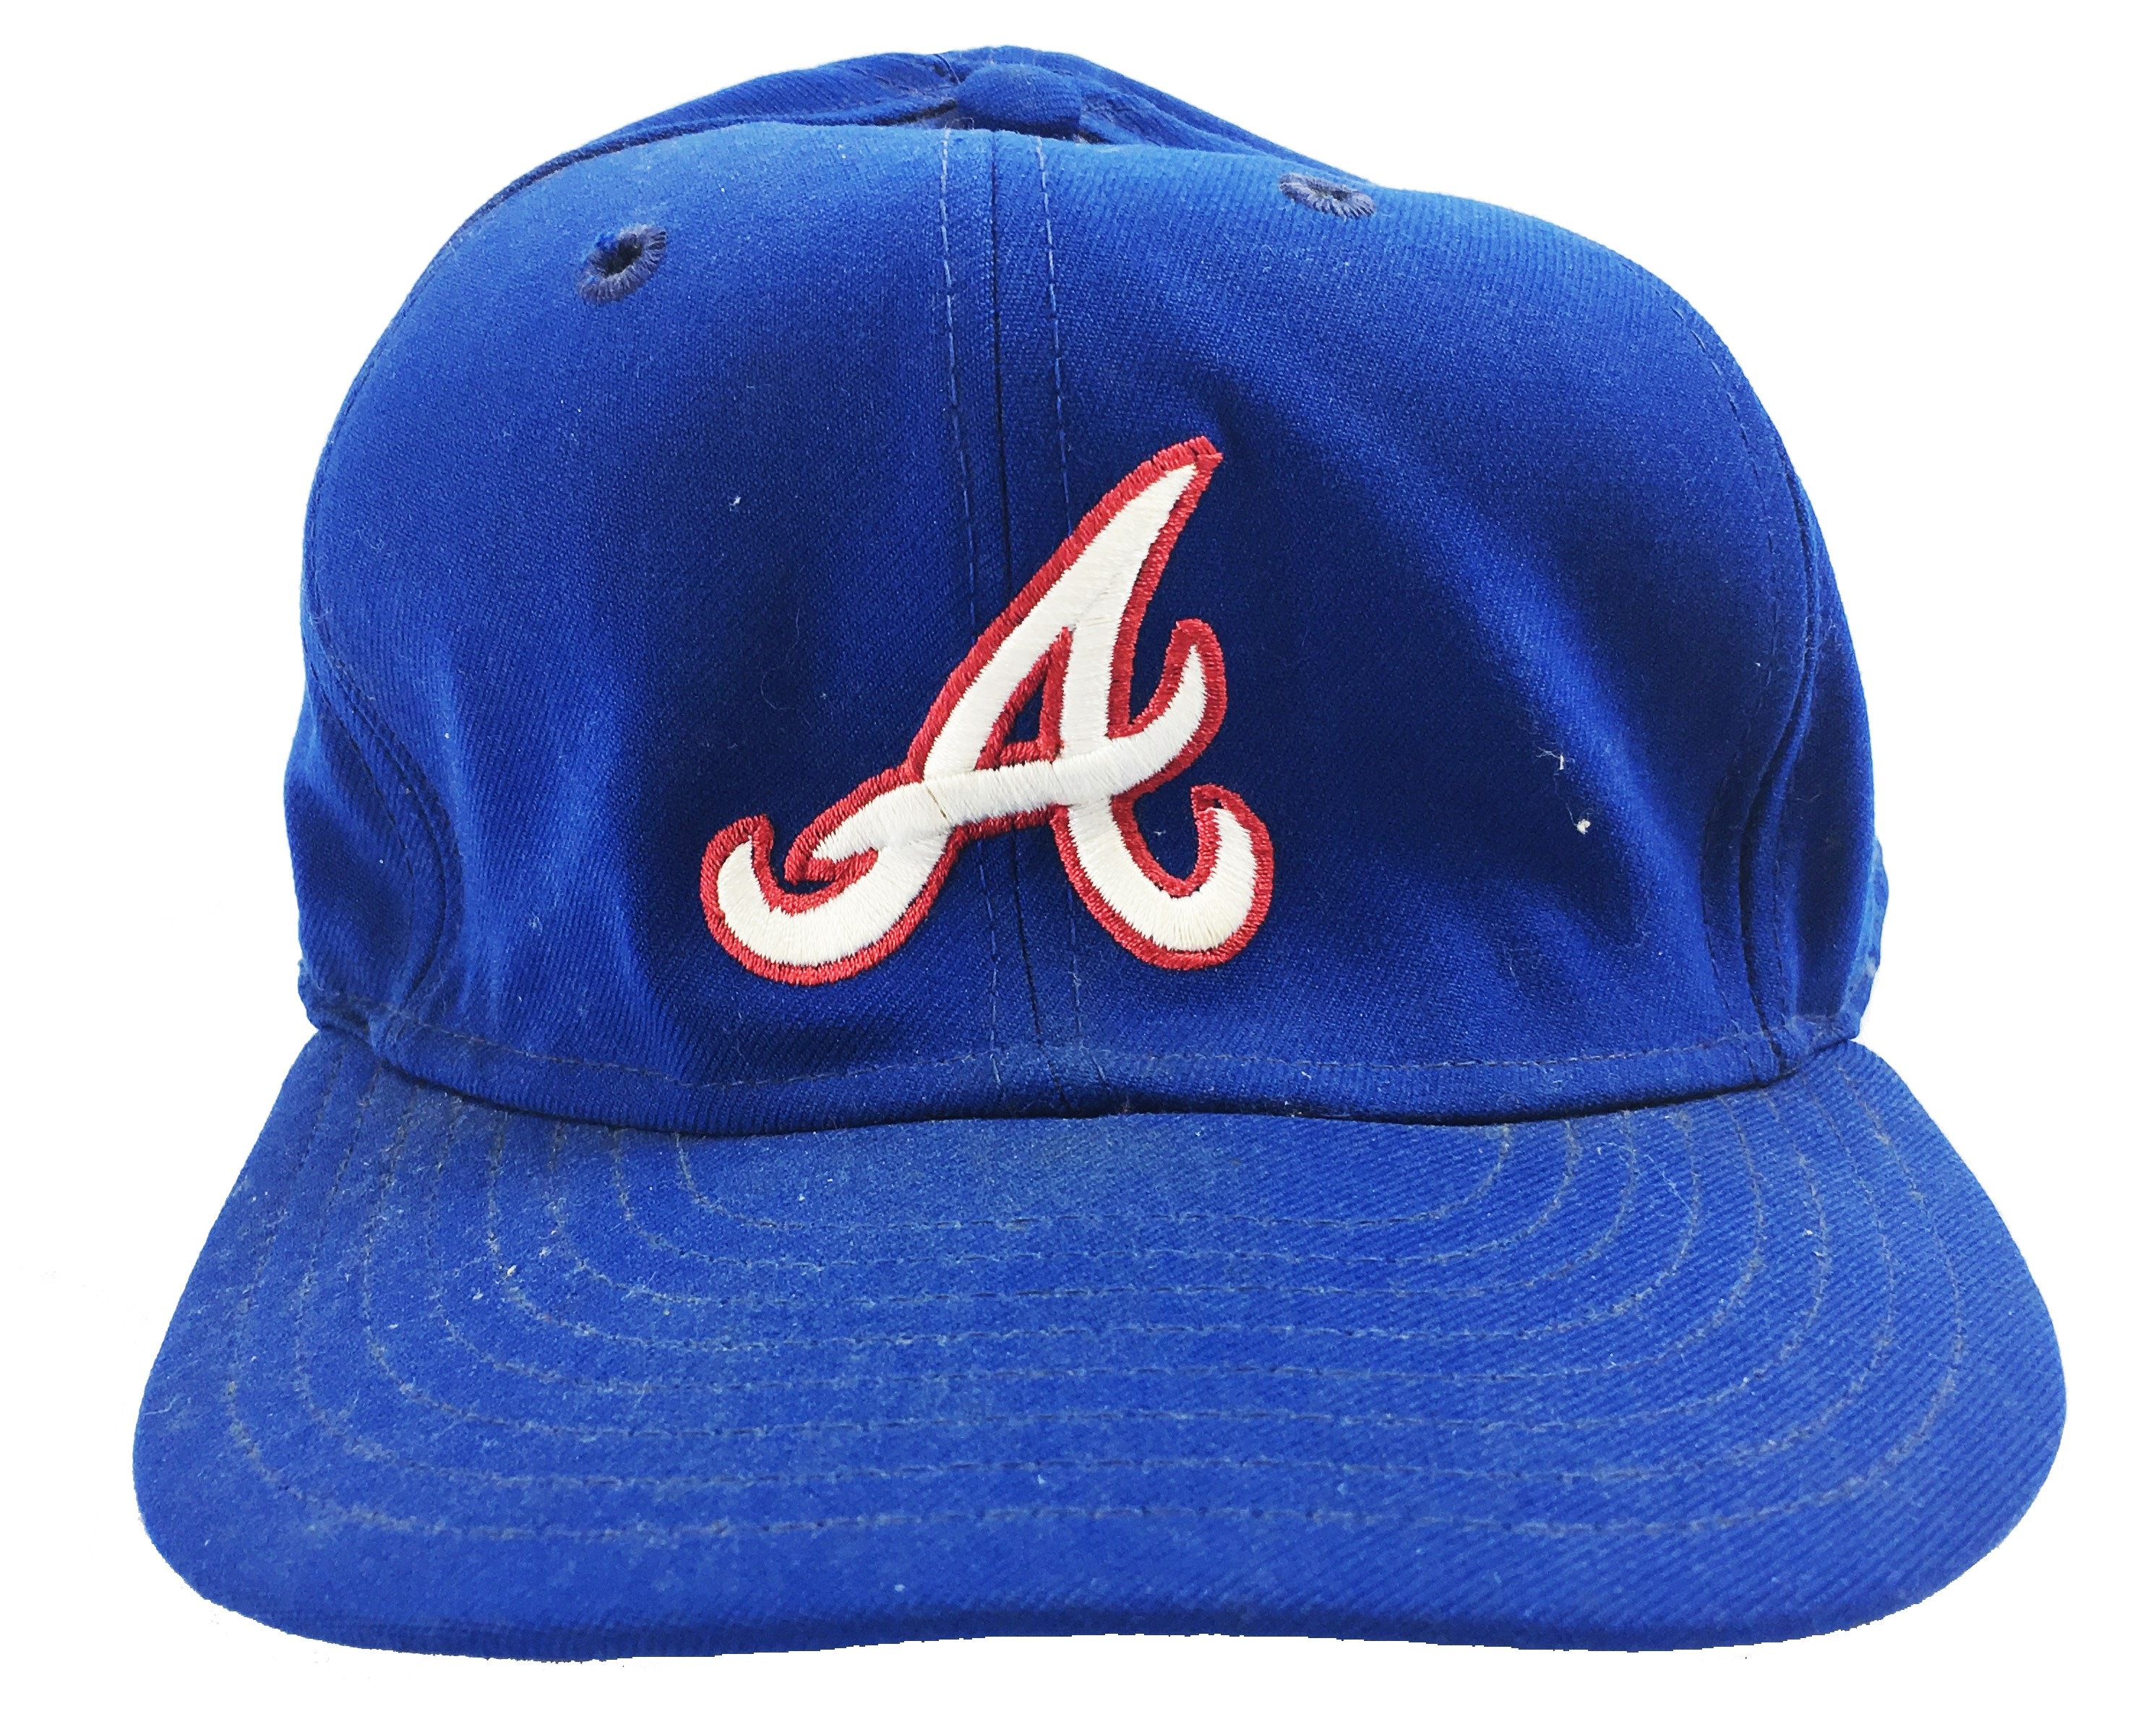 Circa 1983 Joe Torre Signed Game Worn Atlanta Braves Cap